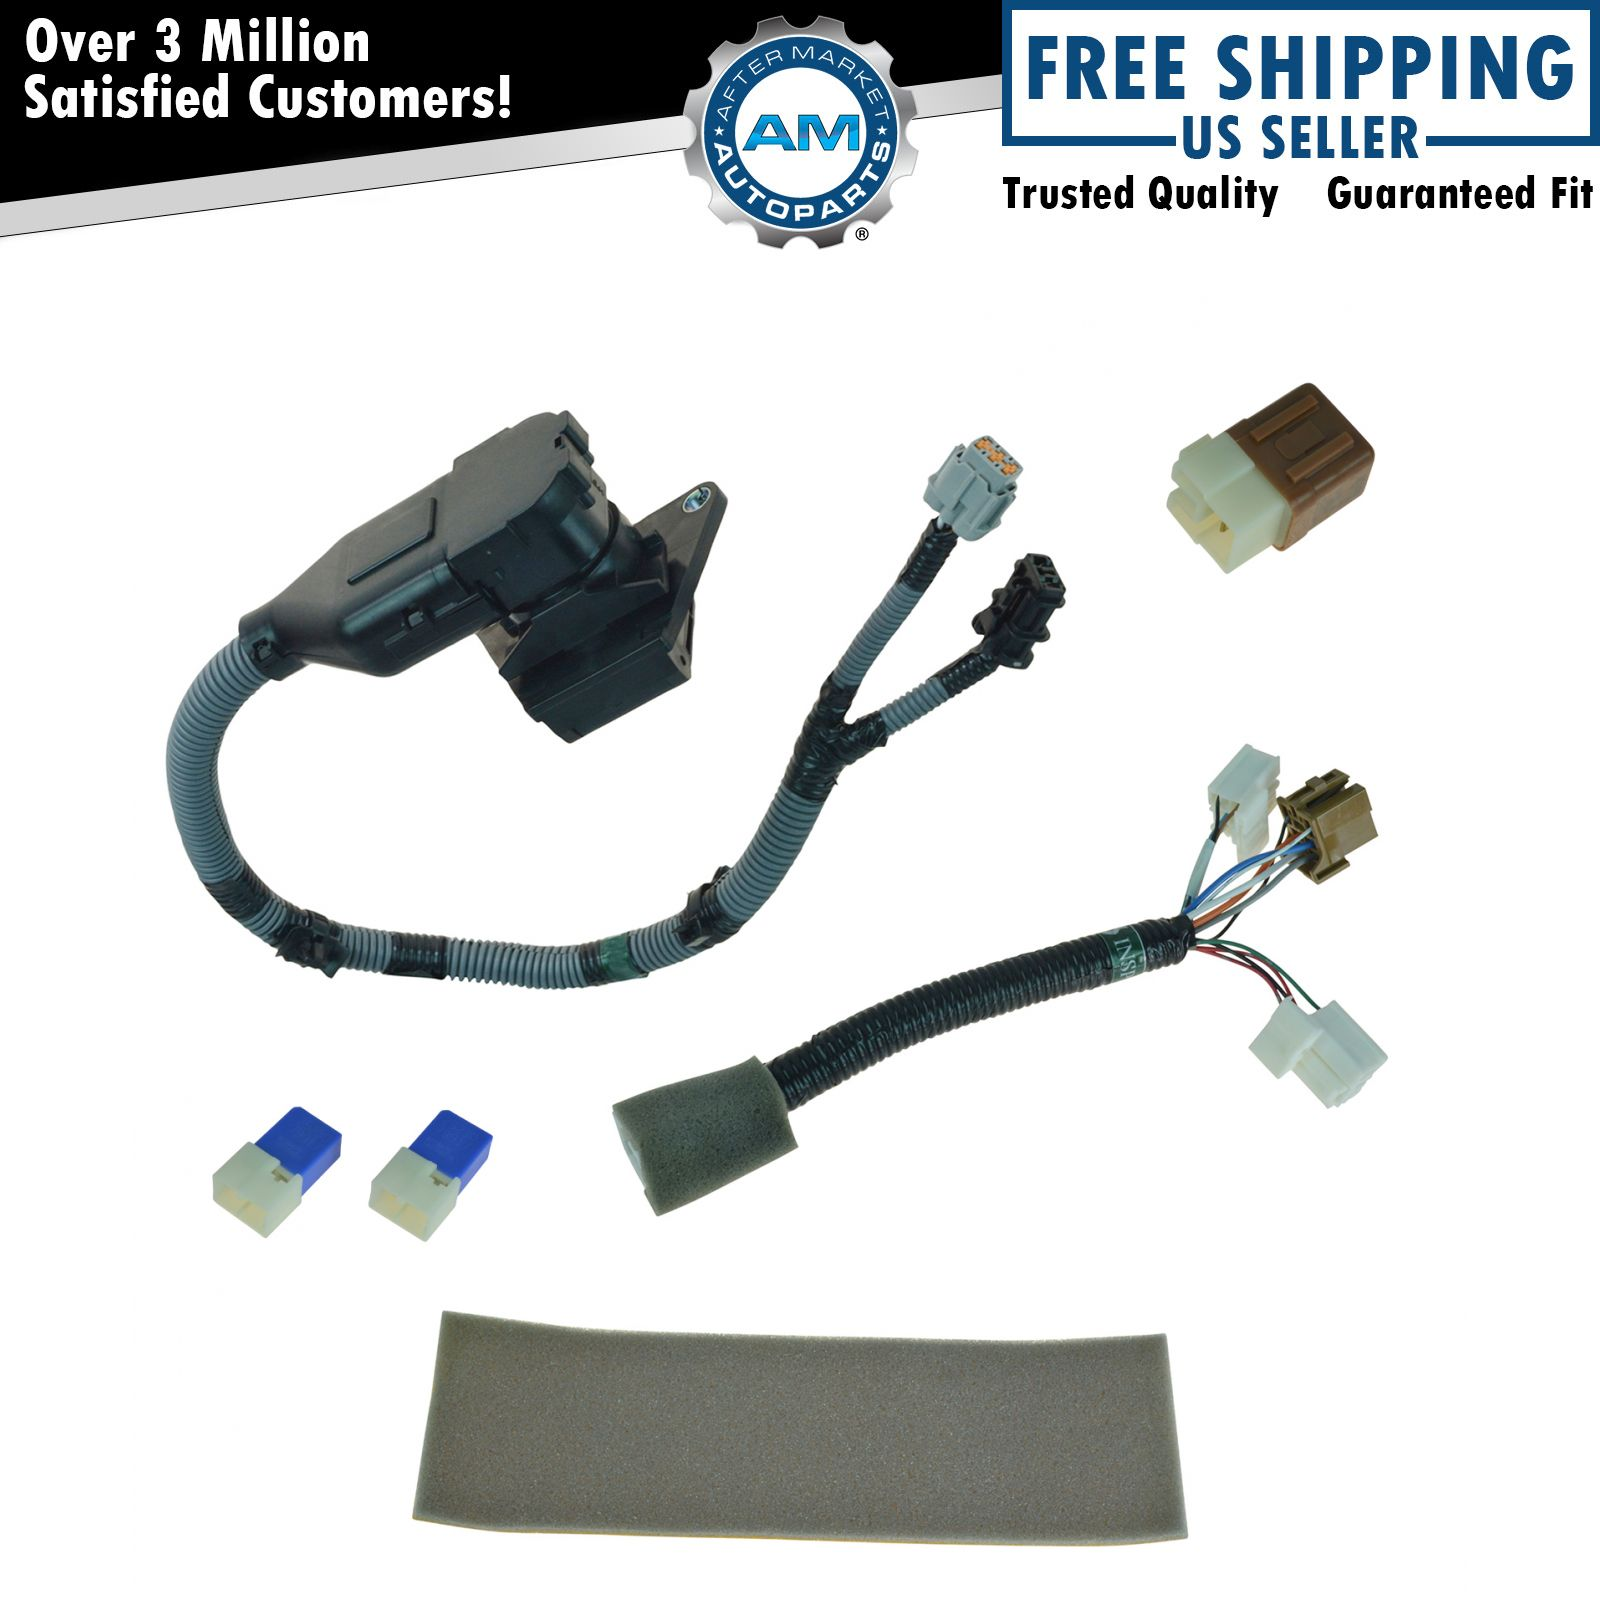 AM 345652165 oem 999t8br020 complete 7 pin plug & play tow harness kit for  at alyssarenee.co